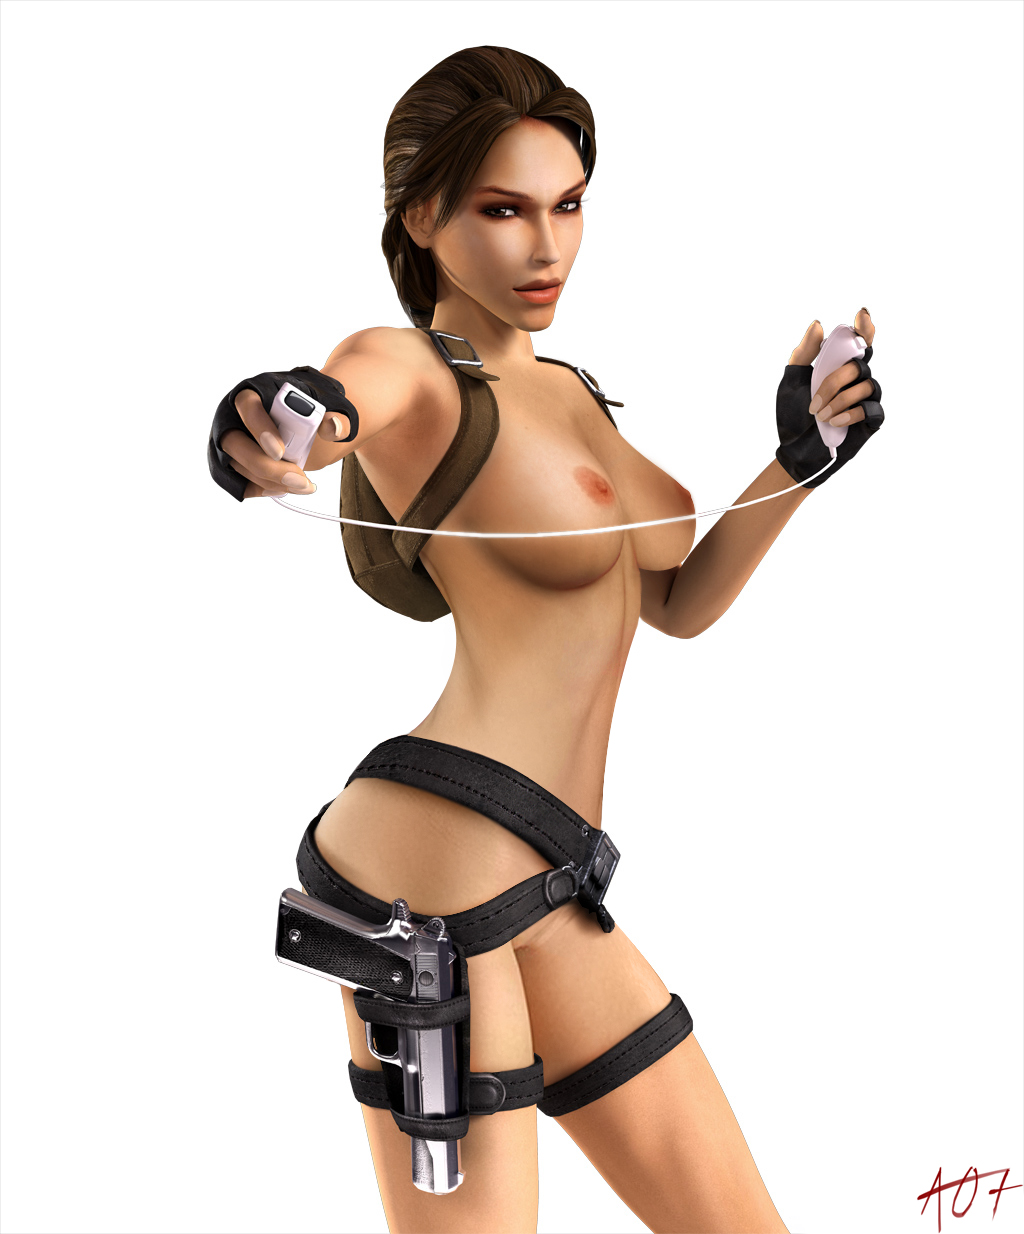 Nude skin of tomb rider anniversary softcore stripper